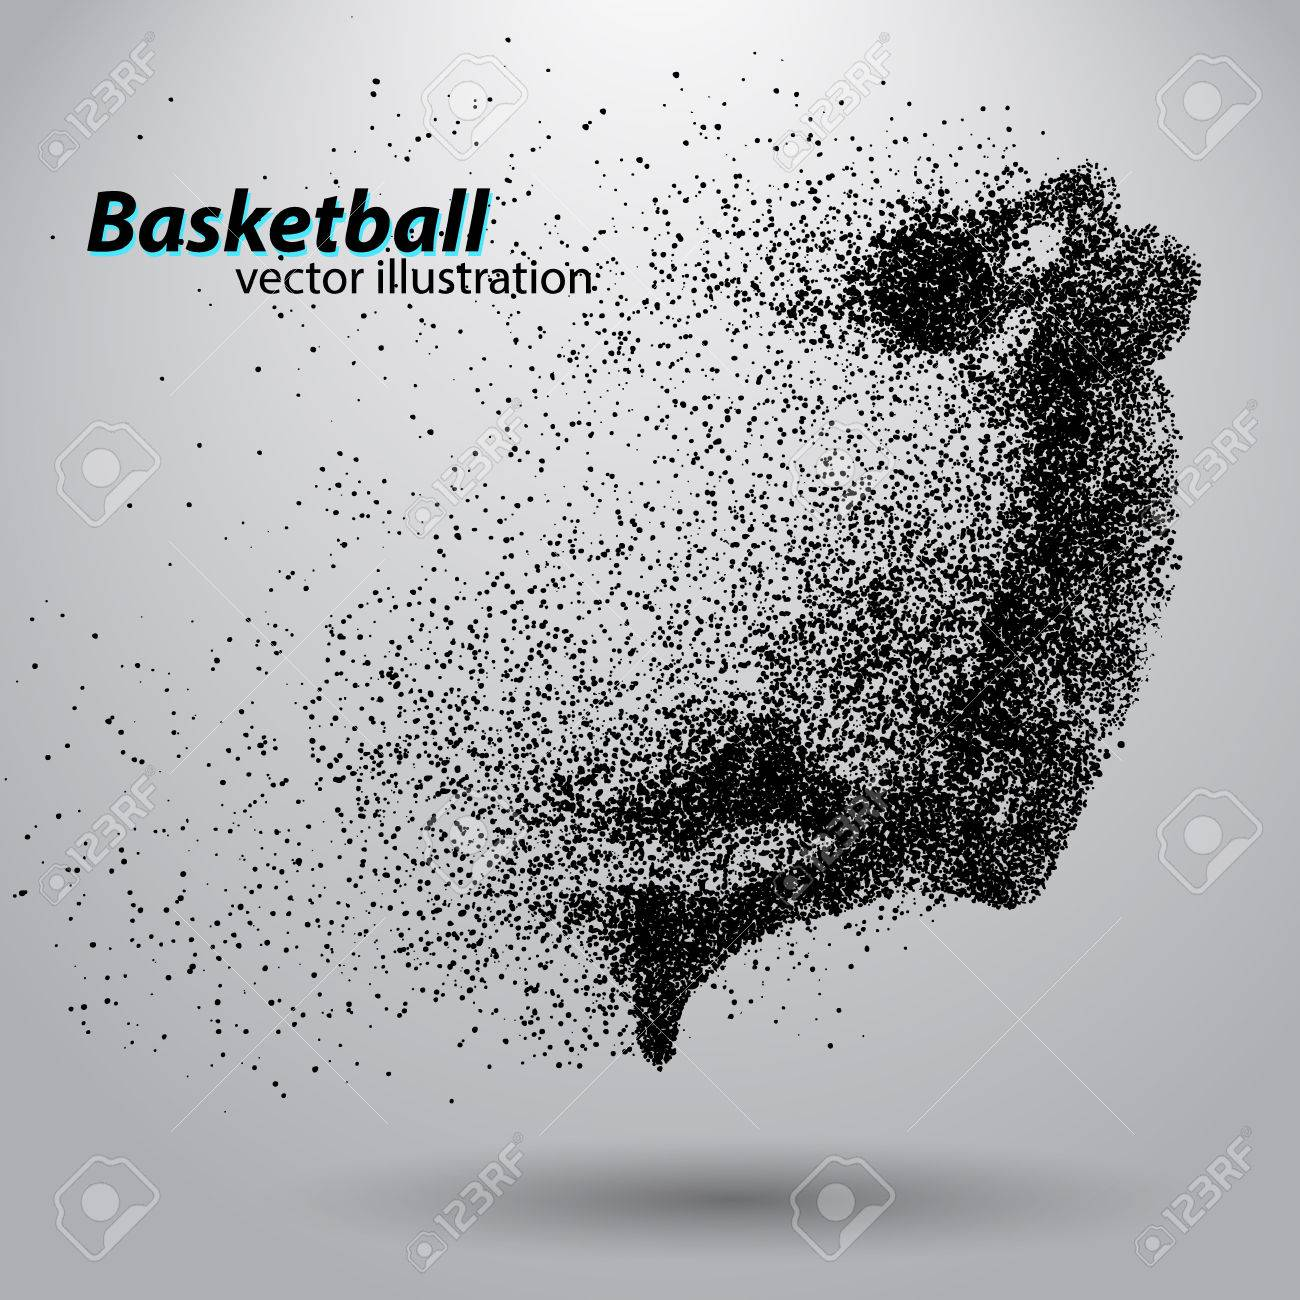 Basketball player from particles. Background and text on a separate layer, color can be changed in one click. Basketball abstract - 67497375